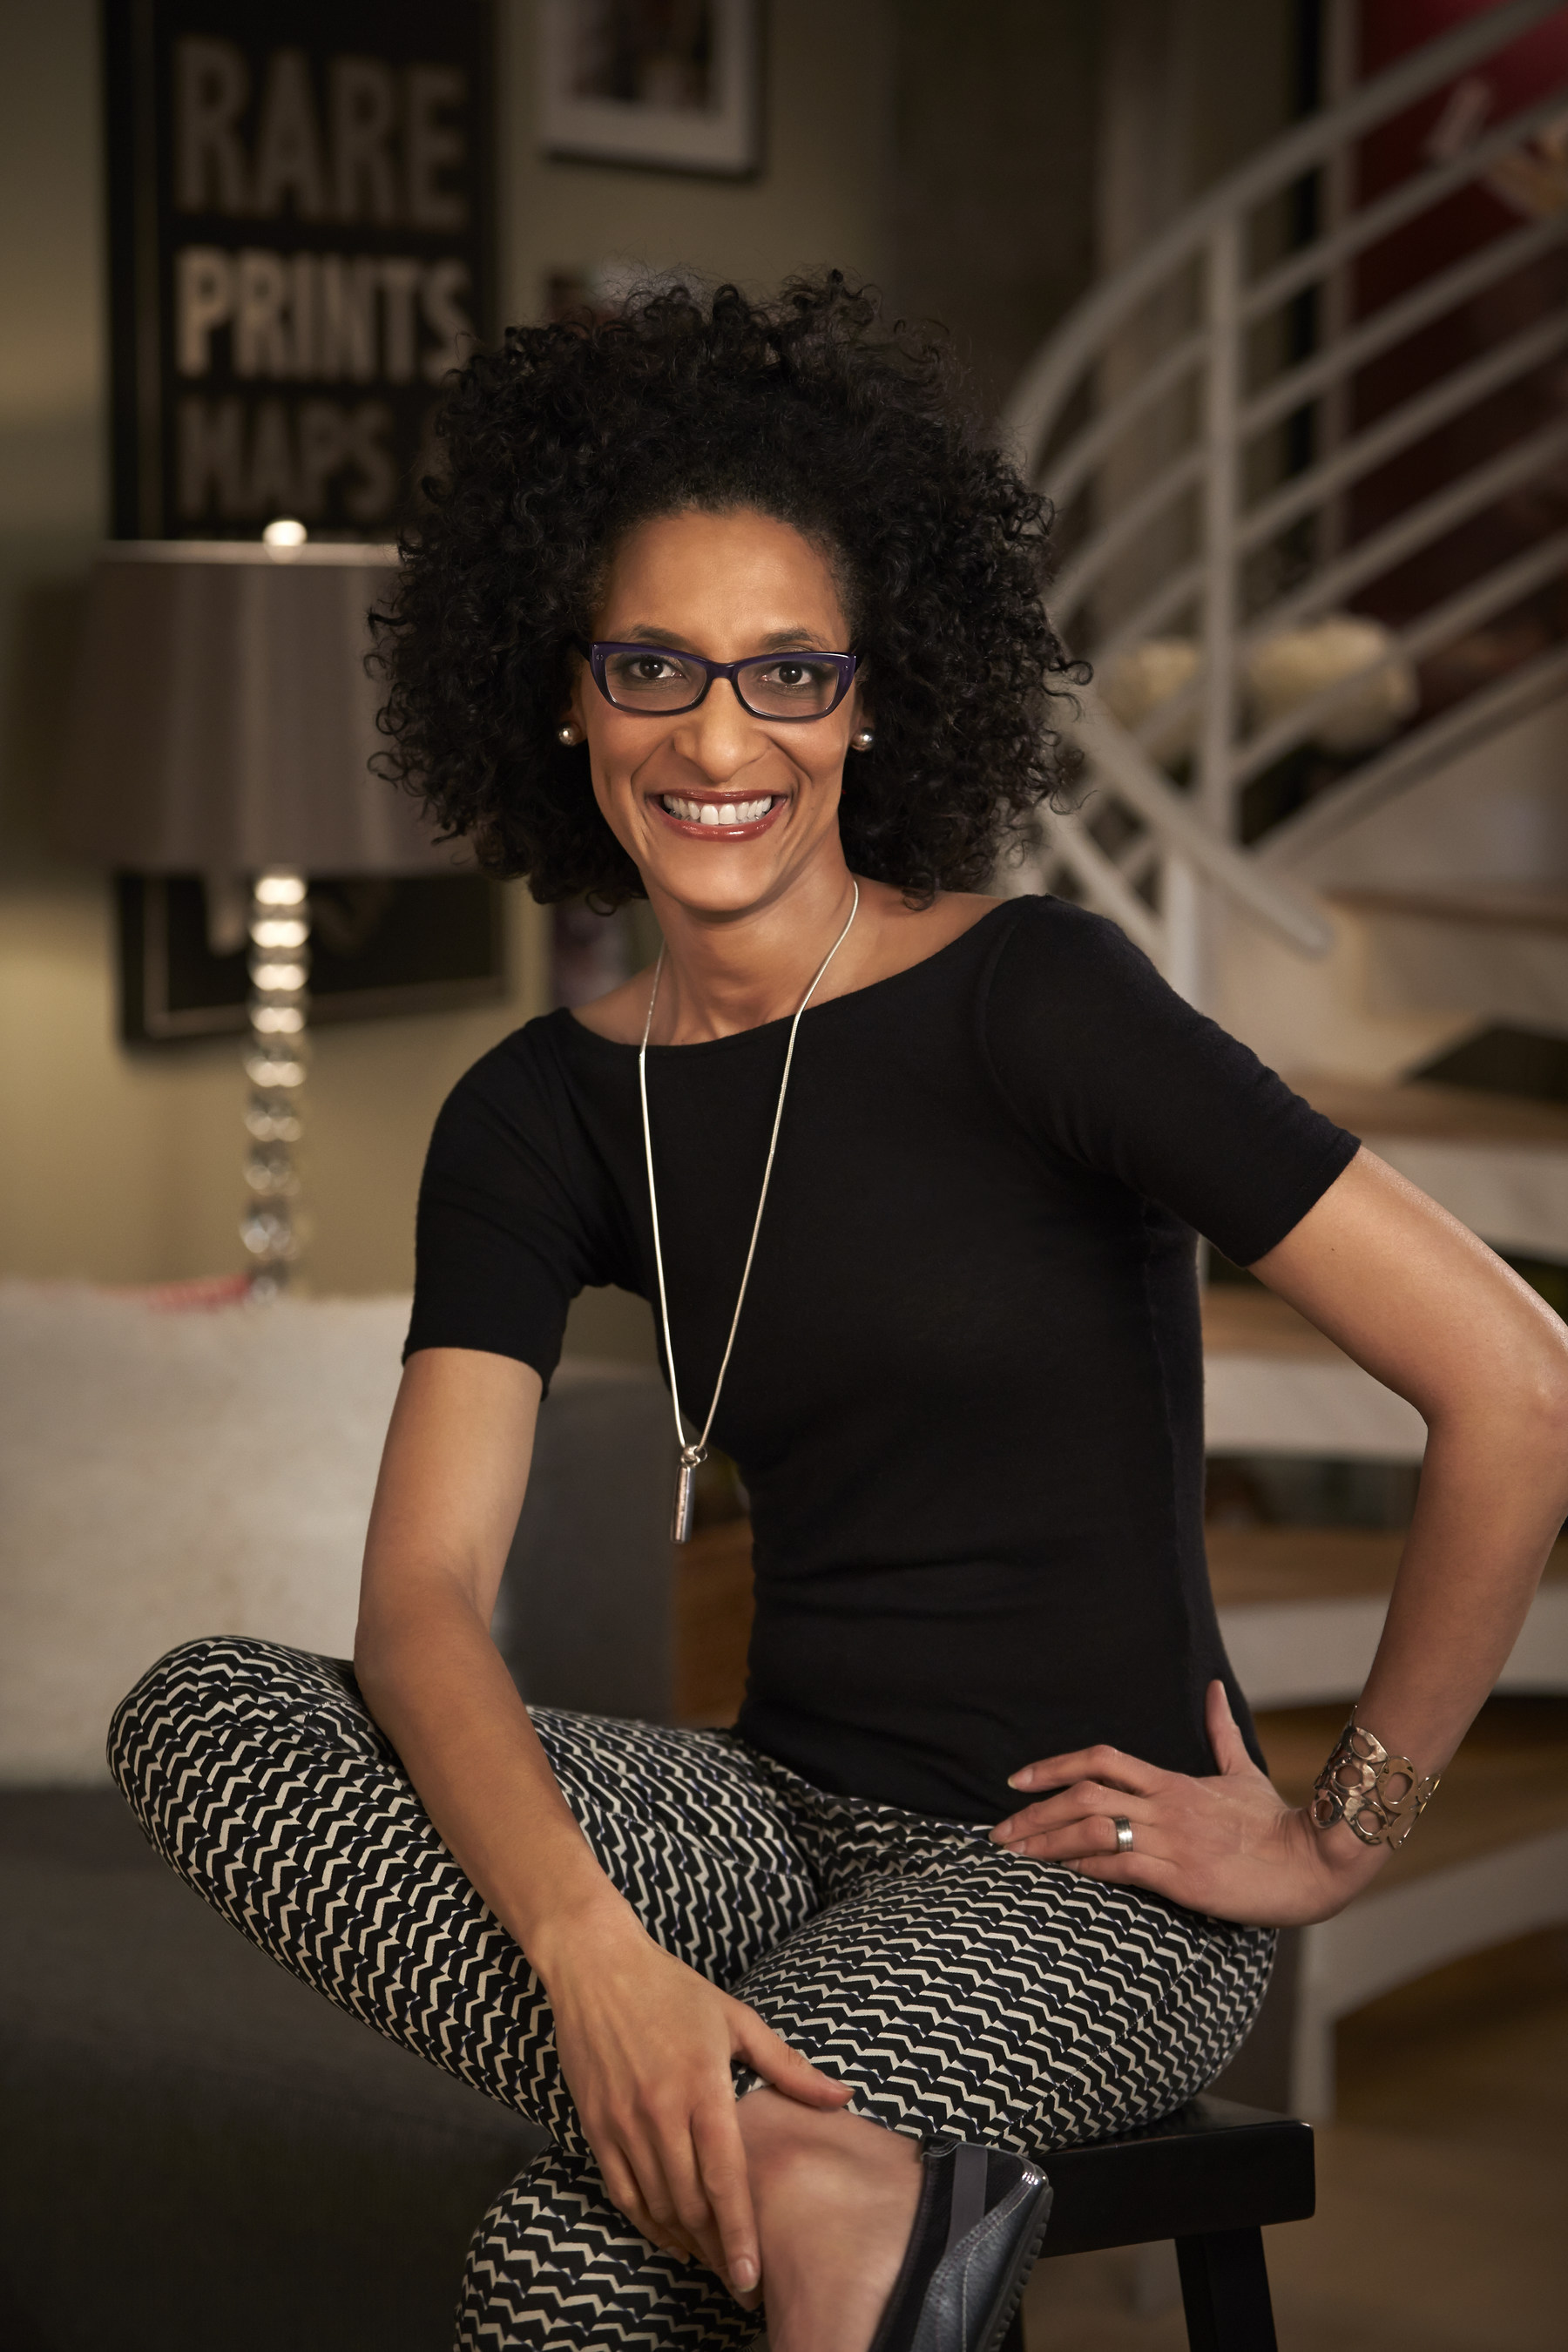 Celebrity Chef Carla Hall will host the 47th Pillsbury Bake-Off(R) Contest on November 3, 2014 in Nashville, Tenn.